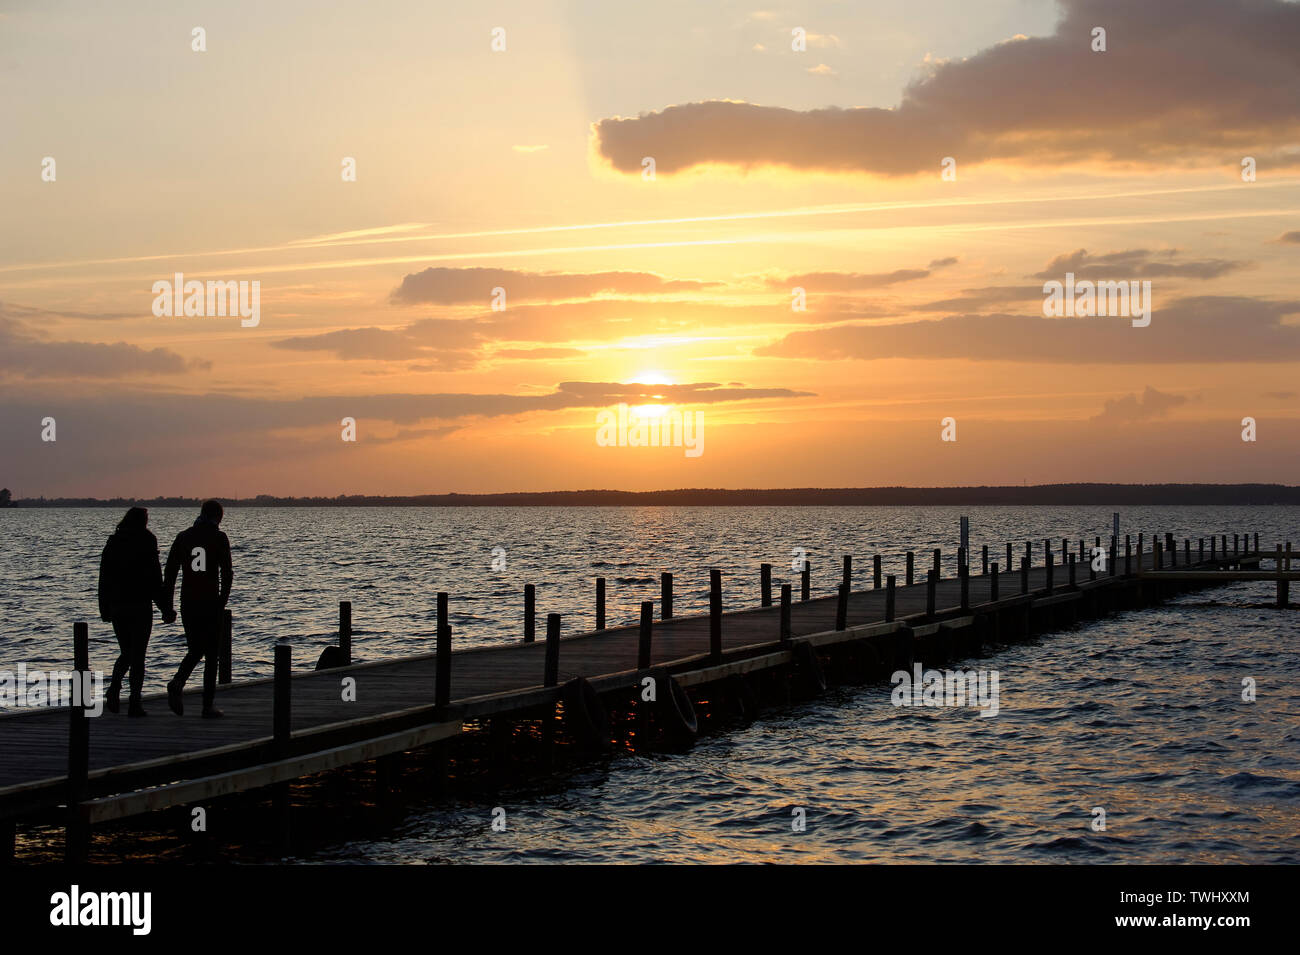 Young couple walking on wooden pier above lake at sunrise. - Stock Image